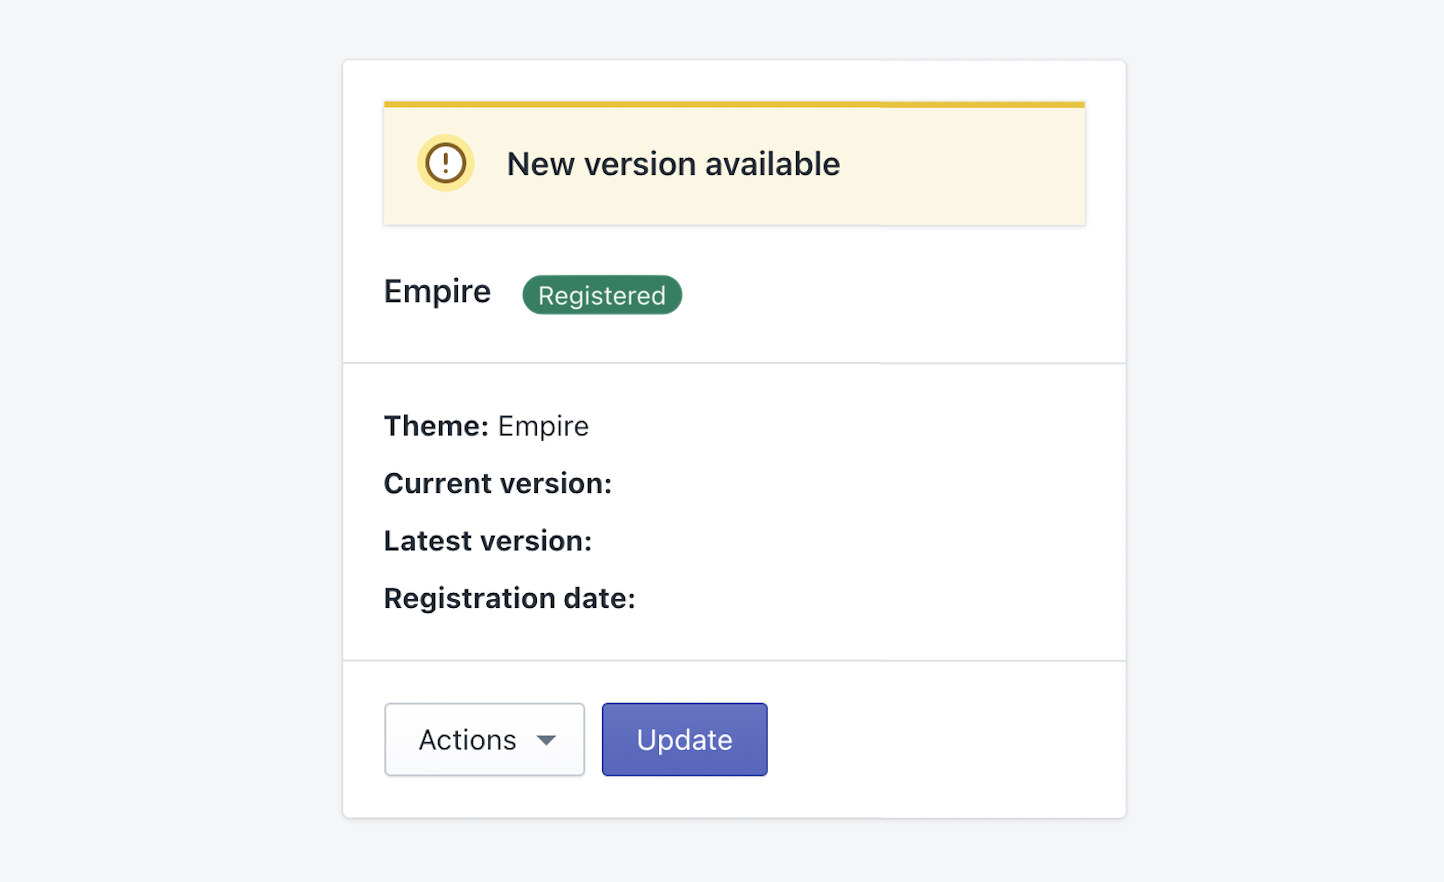 registered_empire_theme_ready_to_update.png